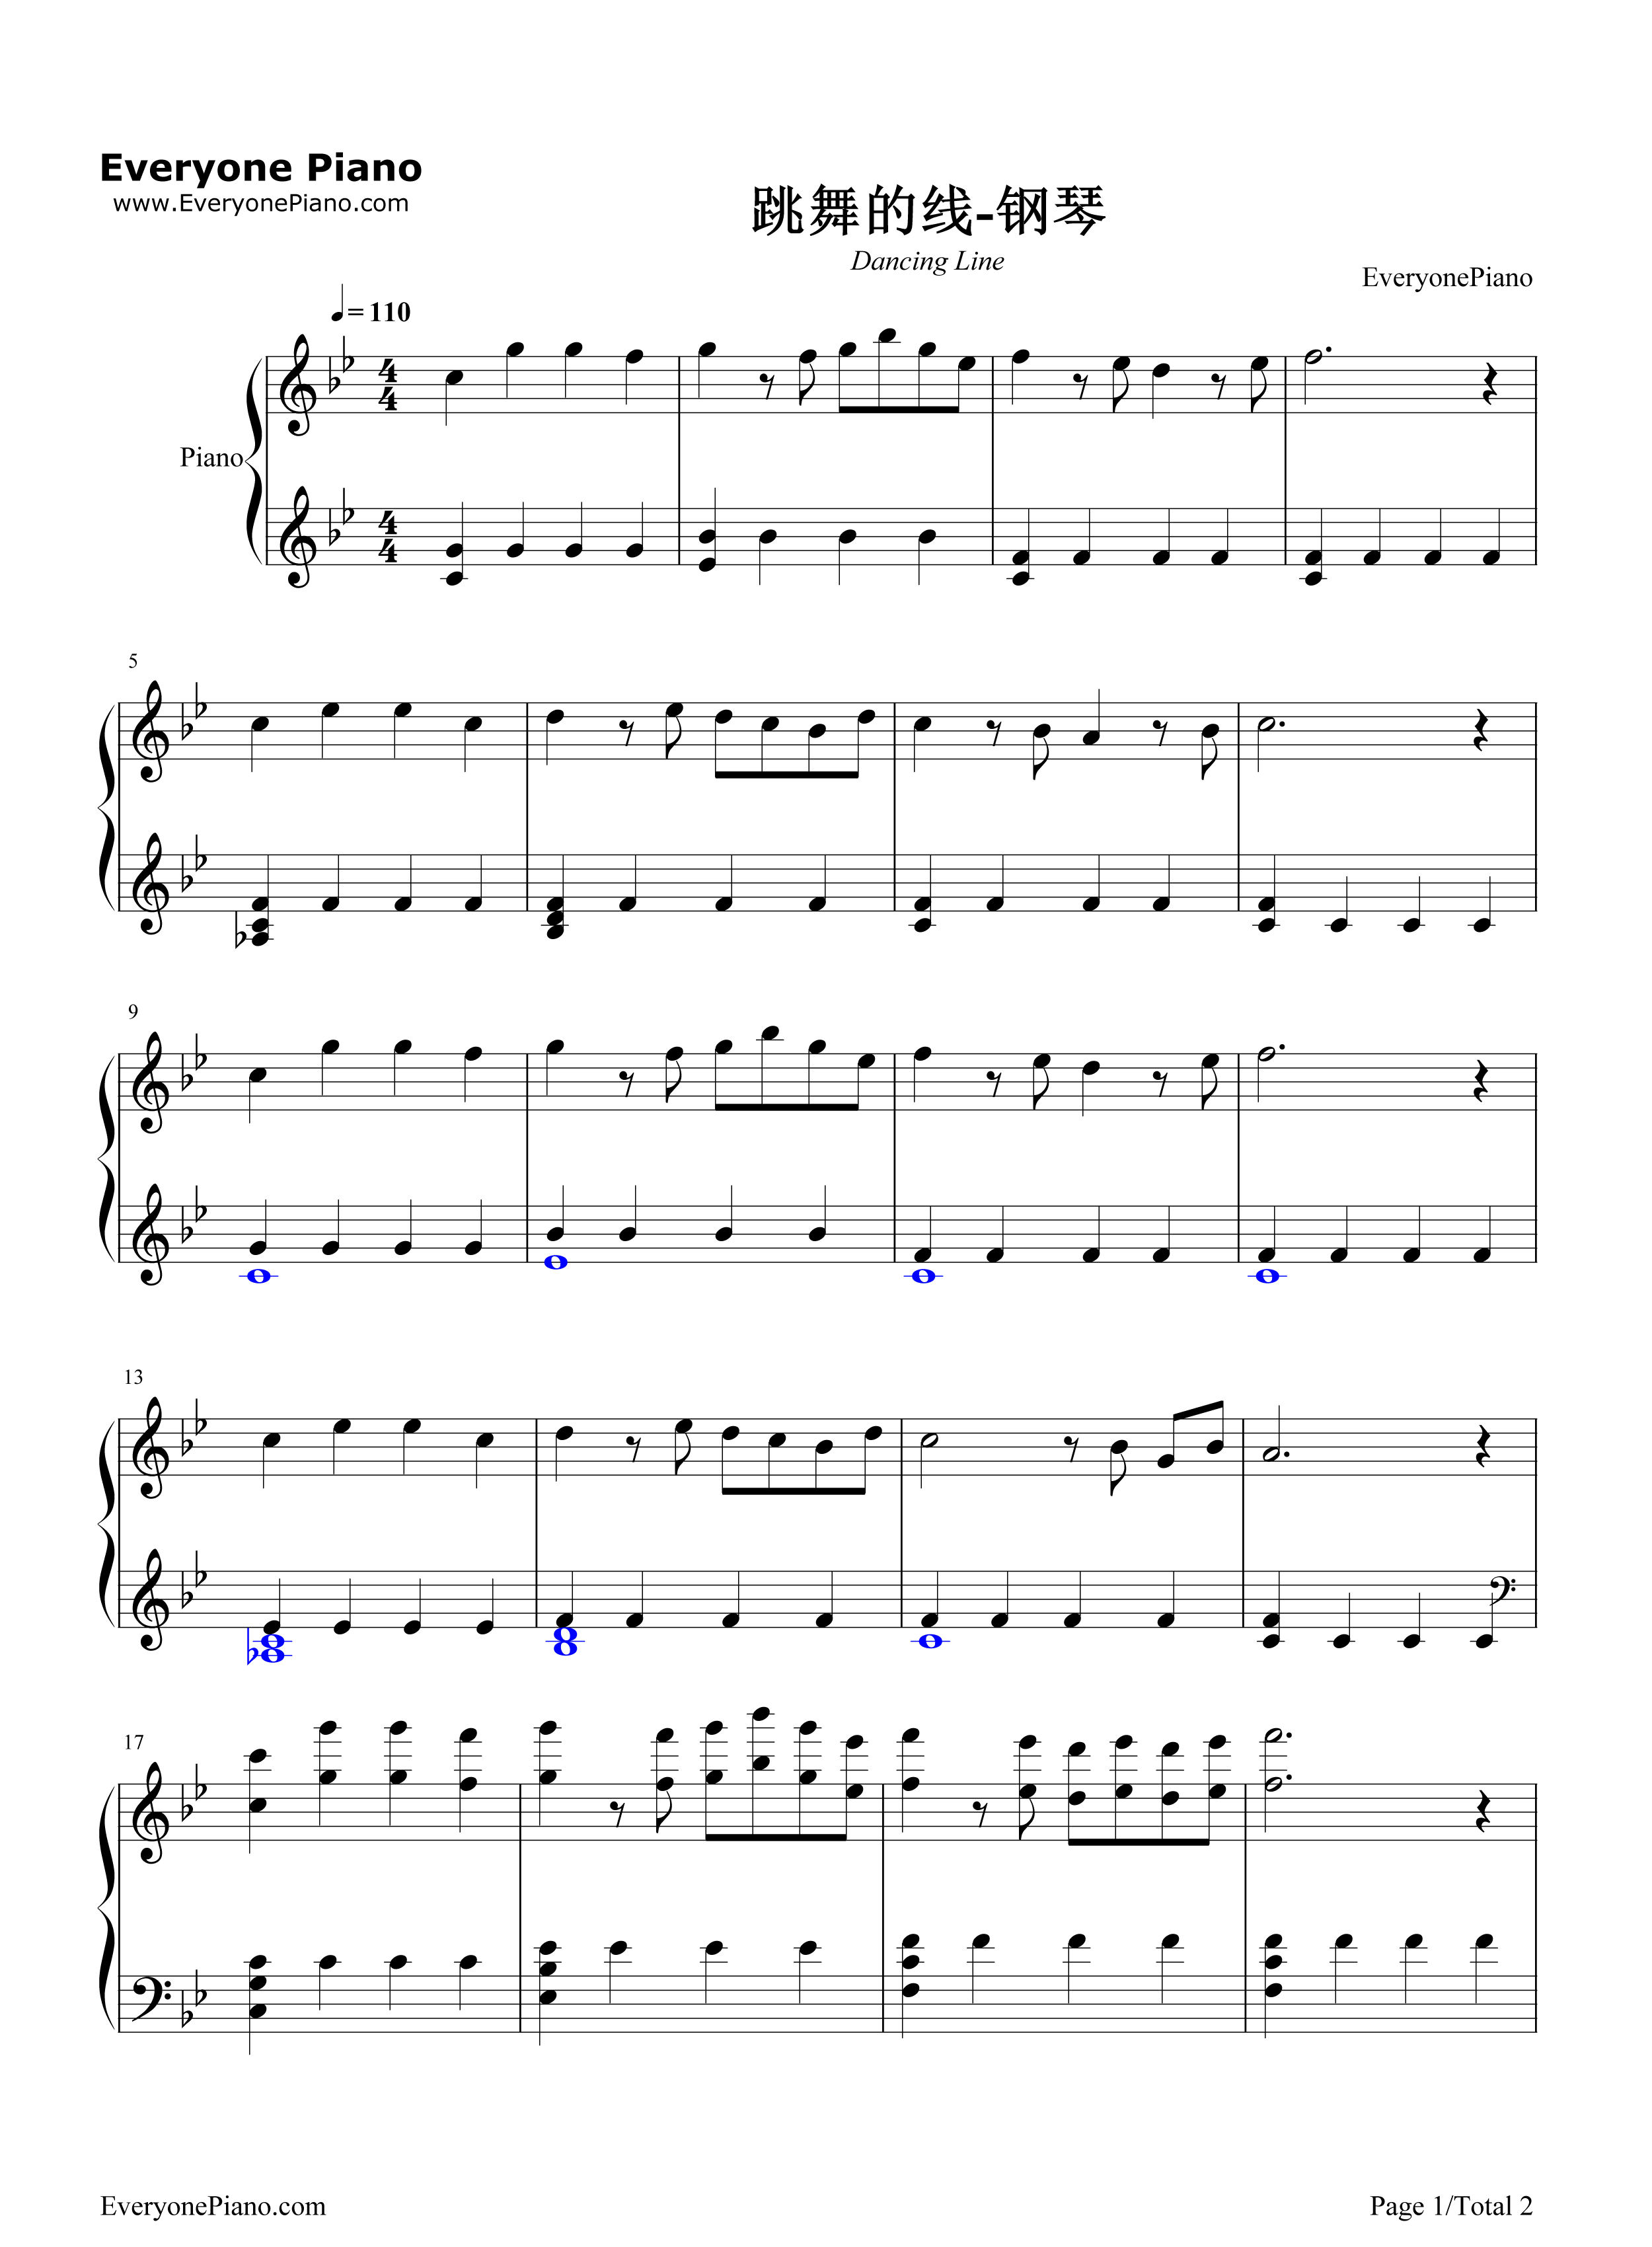 Dancing line stave preview 1 free piano sheet music piano chords listen now print sheet dancing line stave preview 1 hexwebz Gallery